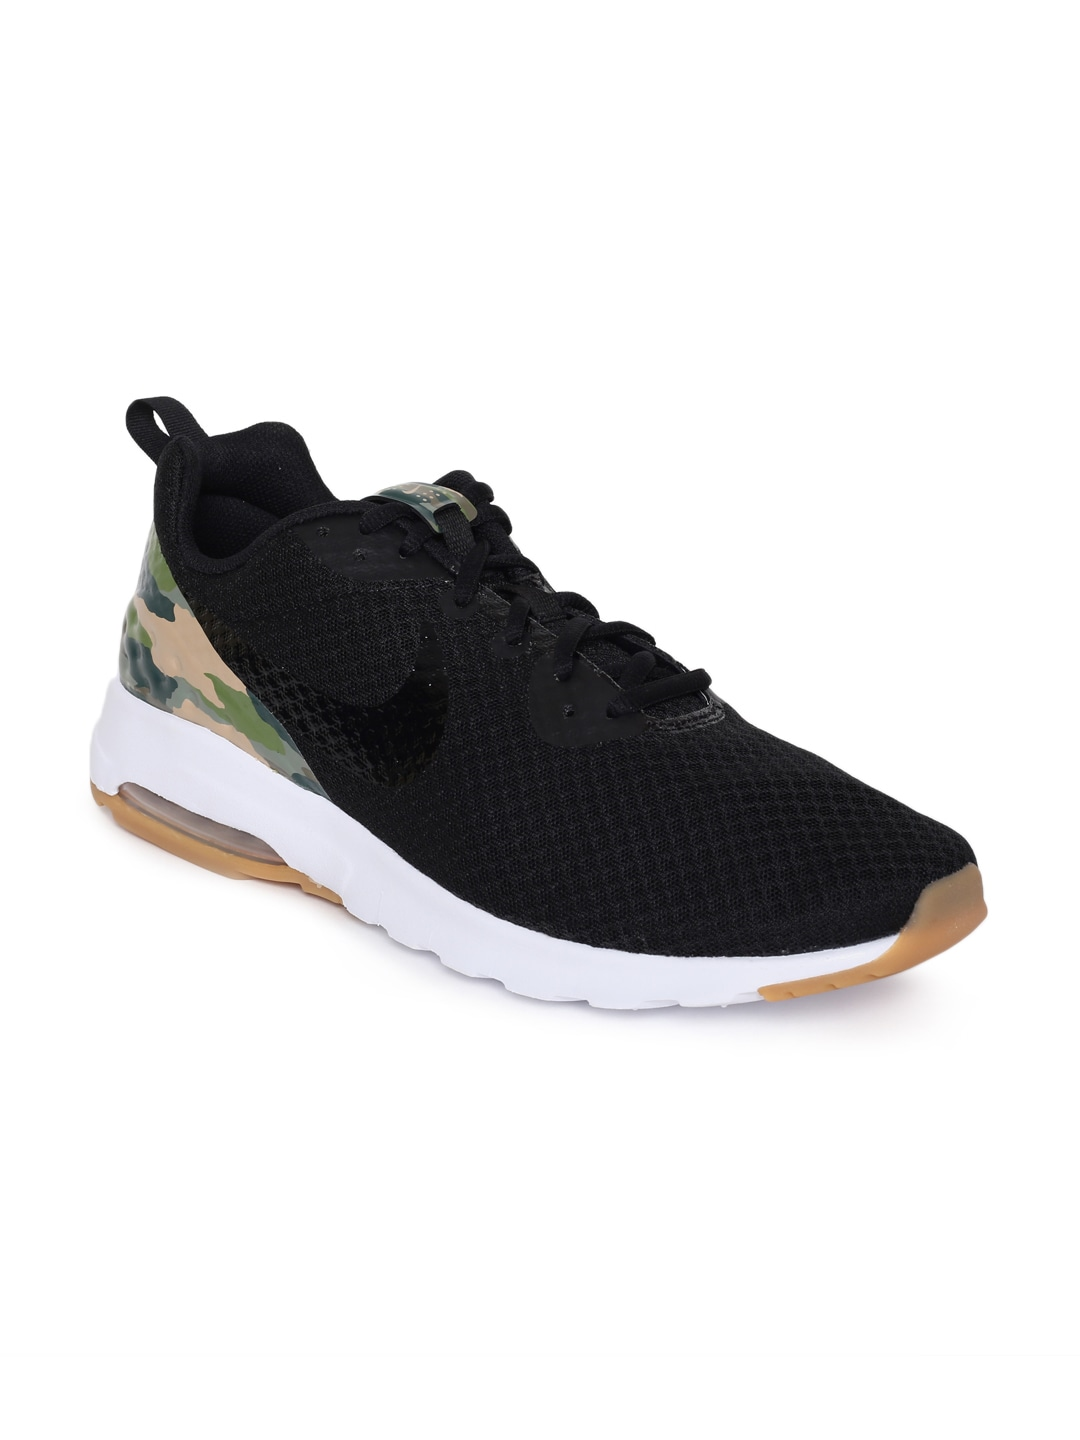 6bf44a1fae2 Nike Running Shoes - Buy Nike Running Shoes Online